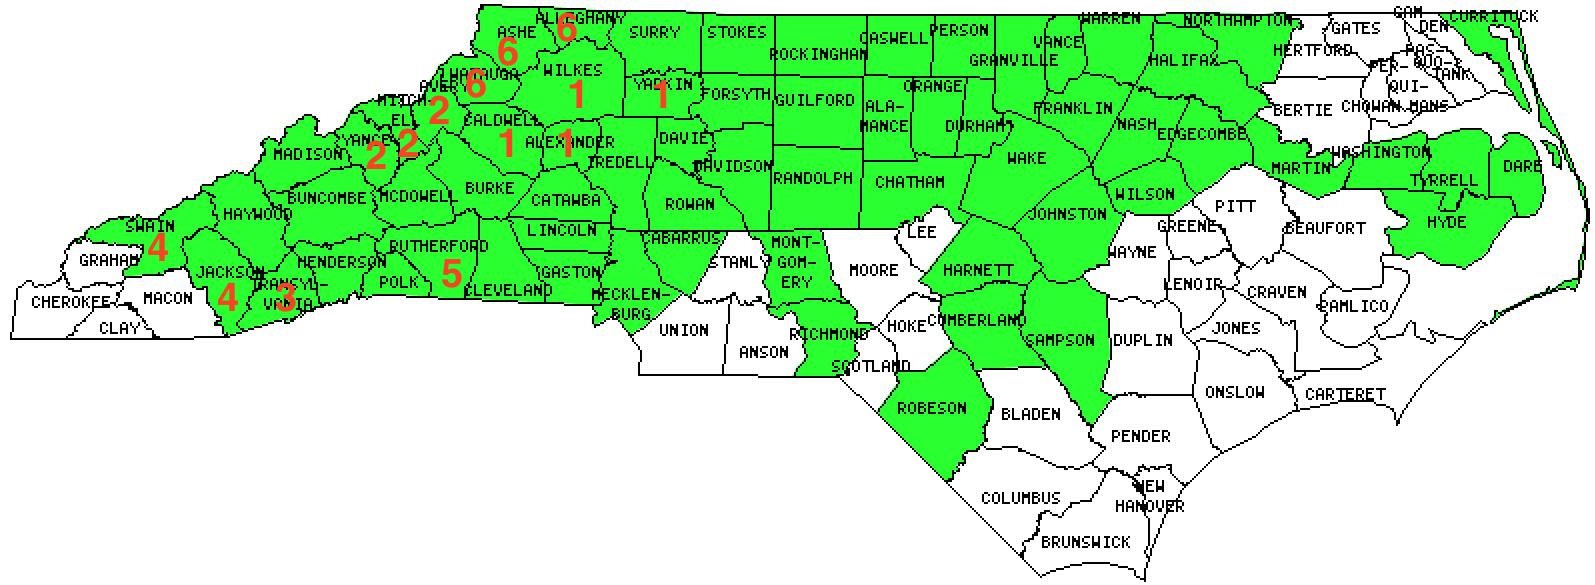 North Carolina County Counting 2015